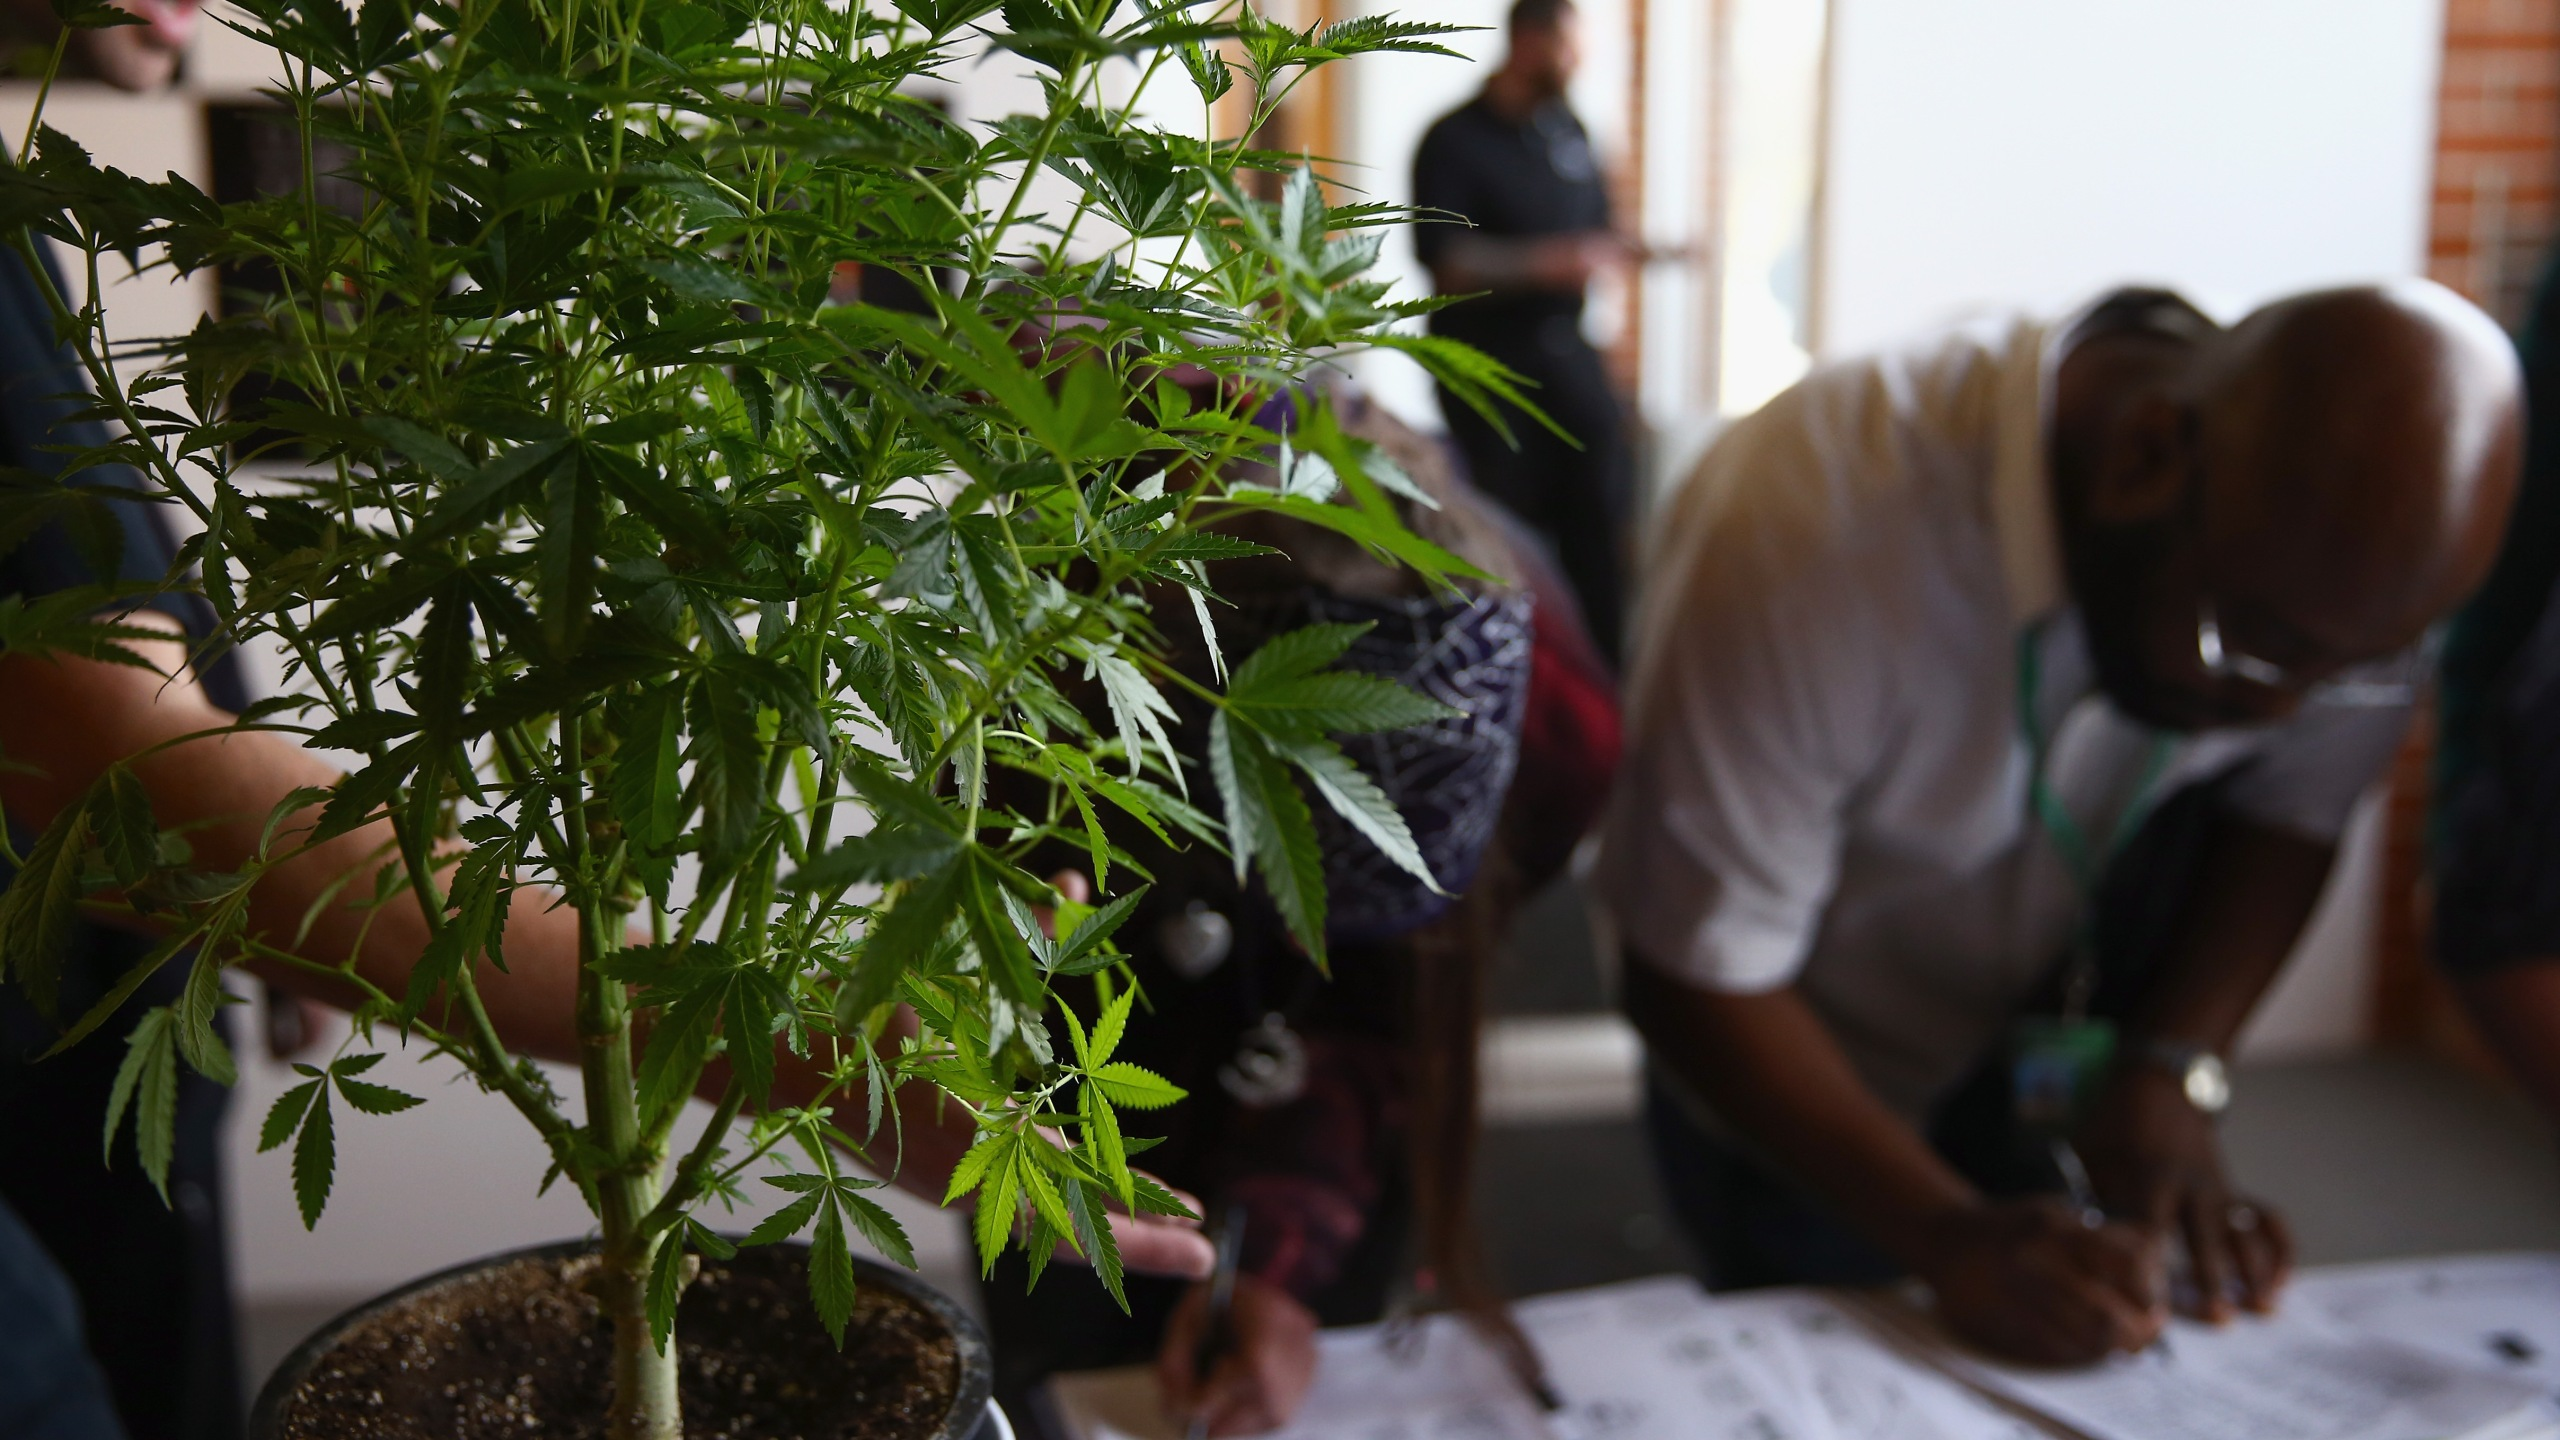 A cannabis plant greets job seekers as they sign in at CannaSearch, Colorado's first cannabis job fair, on March 13, 2014, in Denver. (Credit: Doug Pensinger/Getty Images)